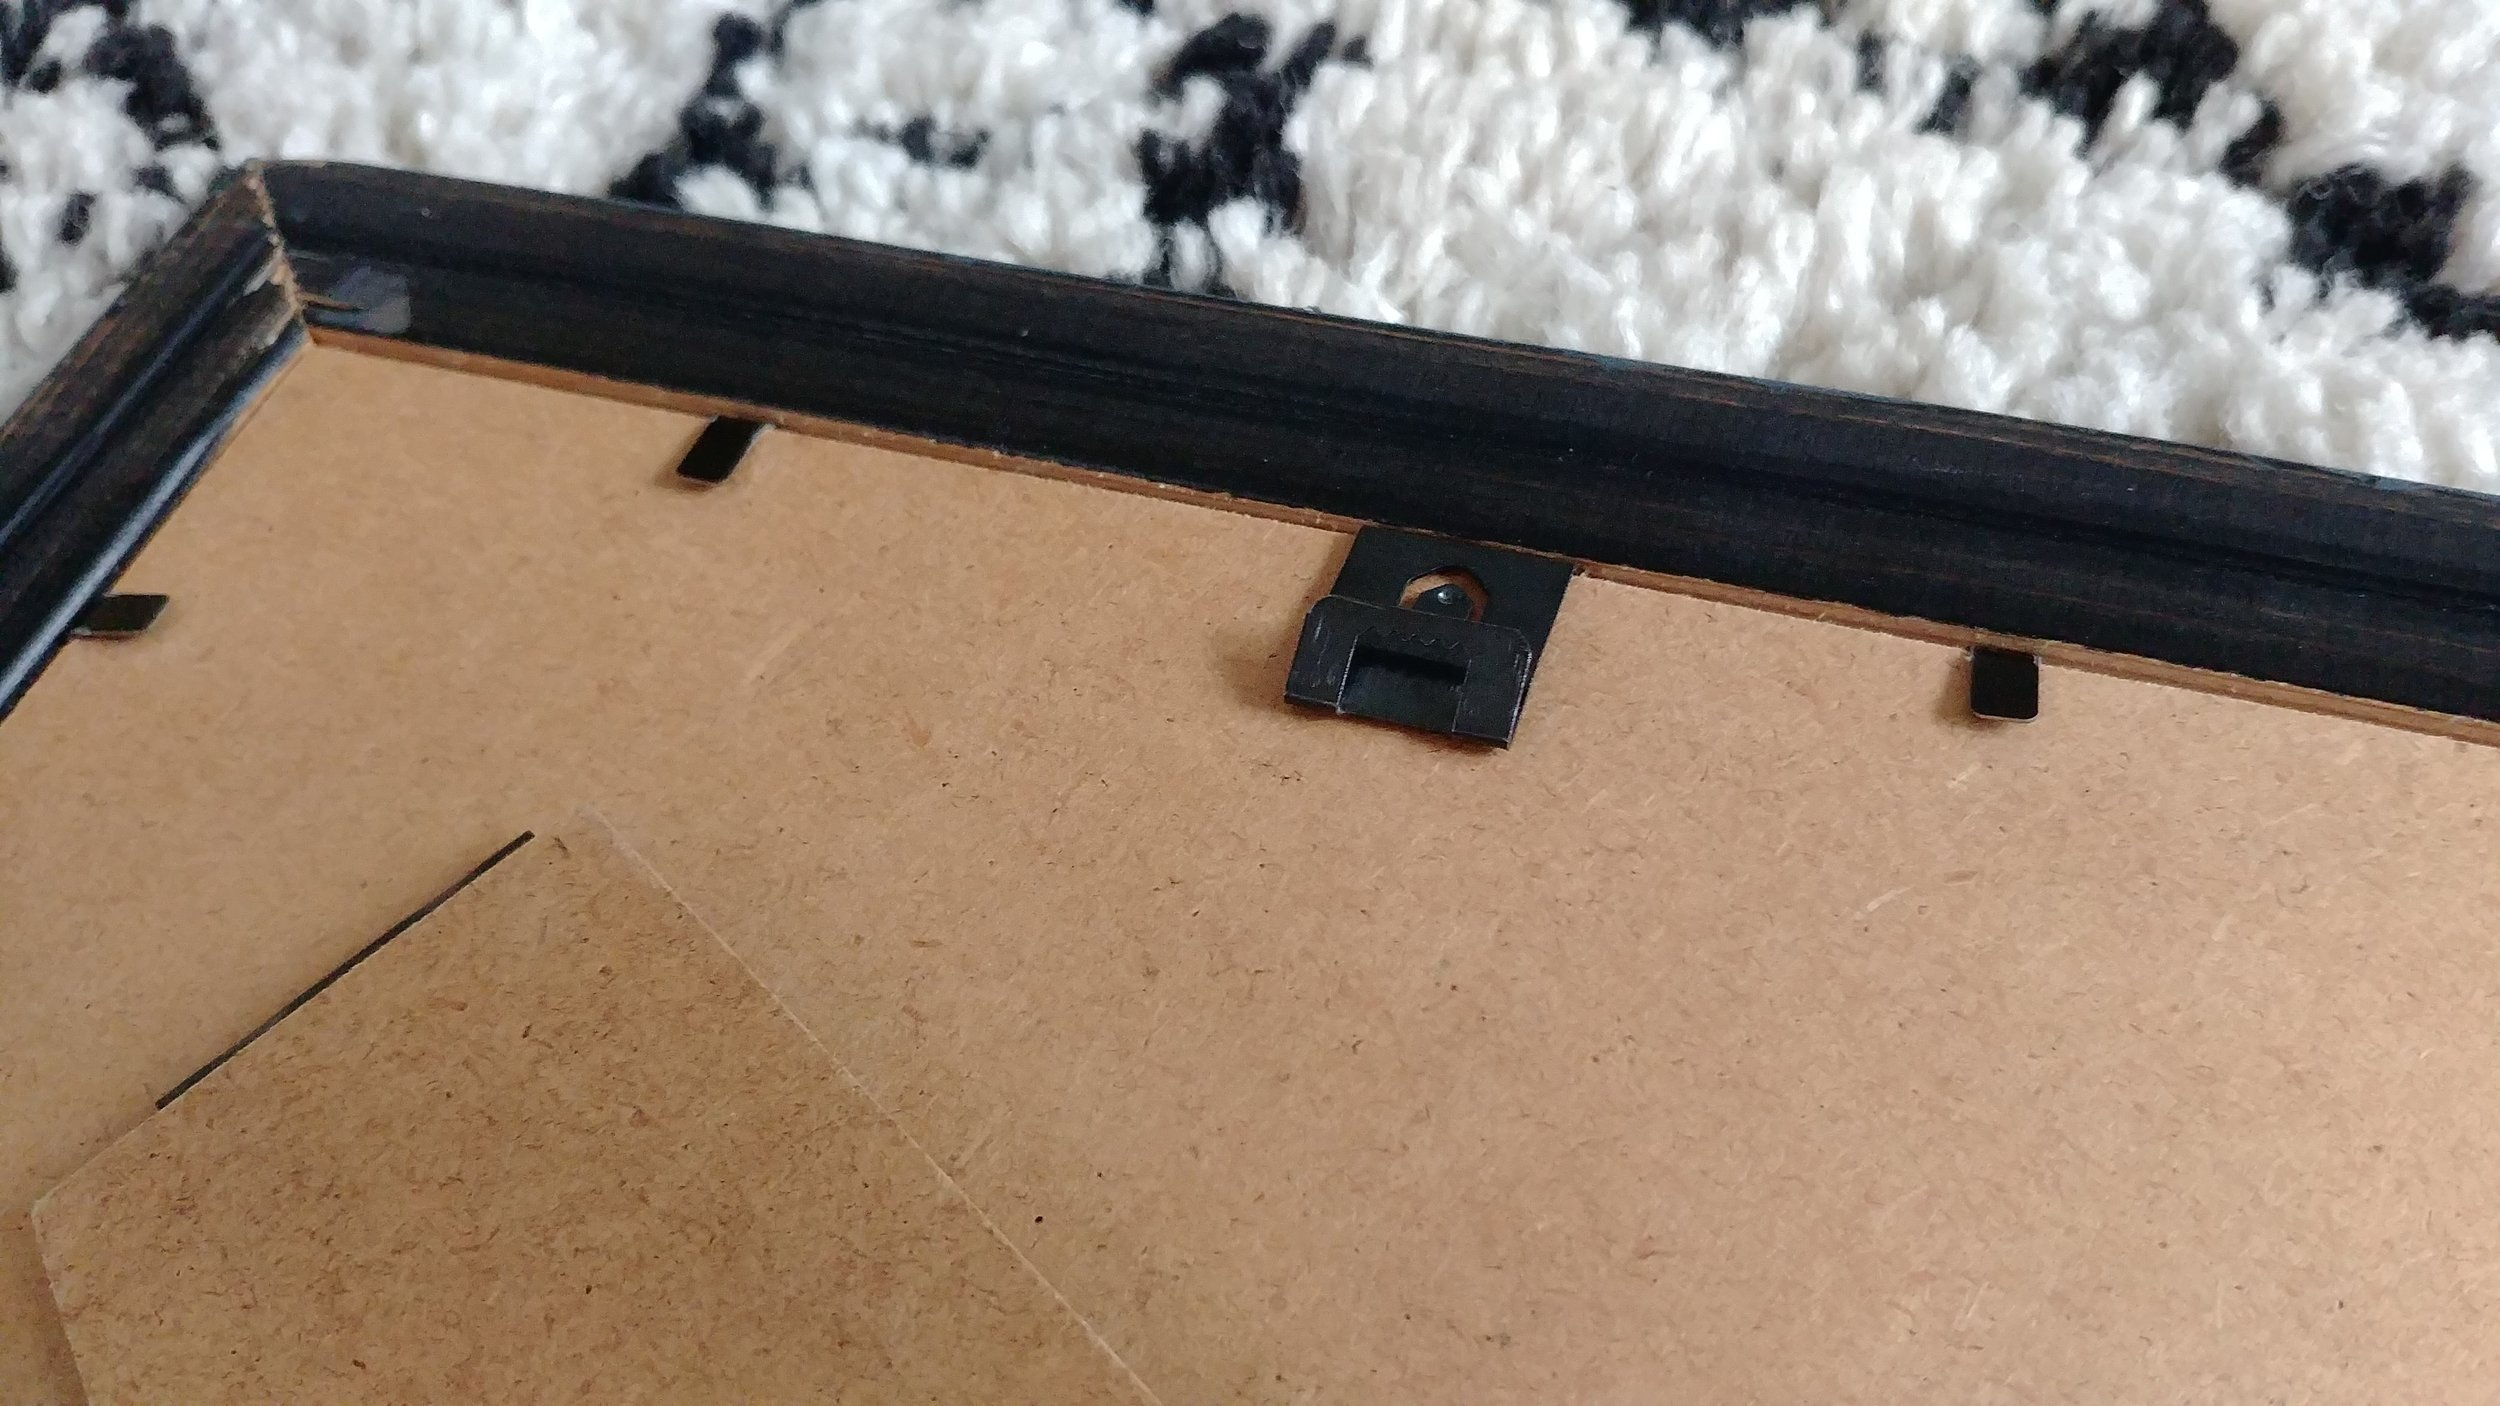 Close-up of the sawtooth fastener which clips over the backer board.